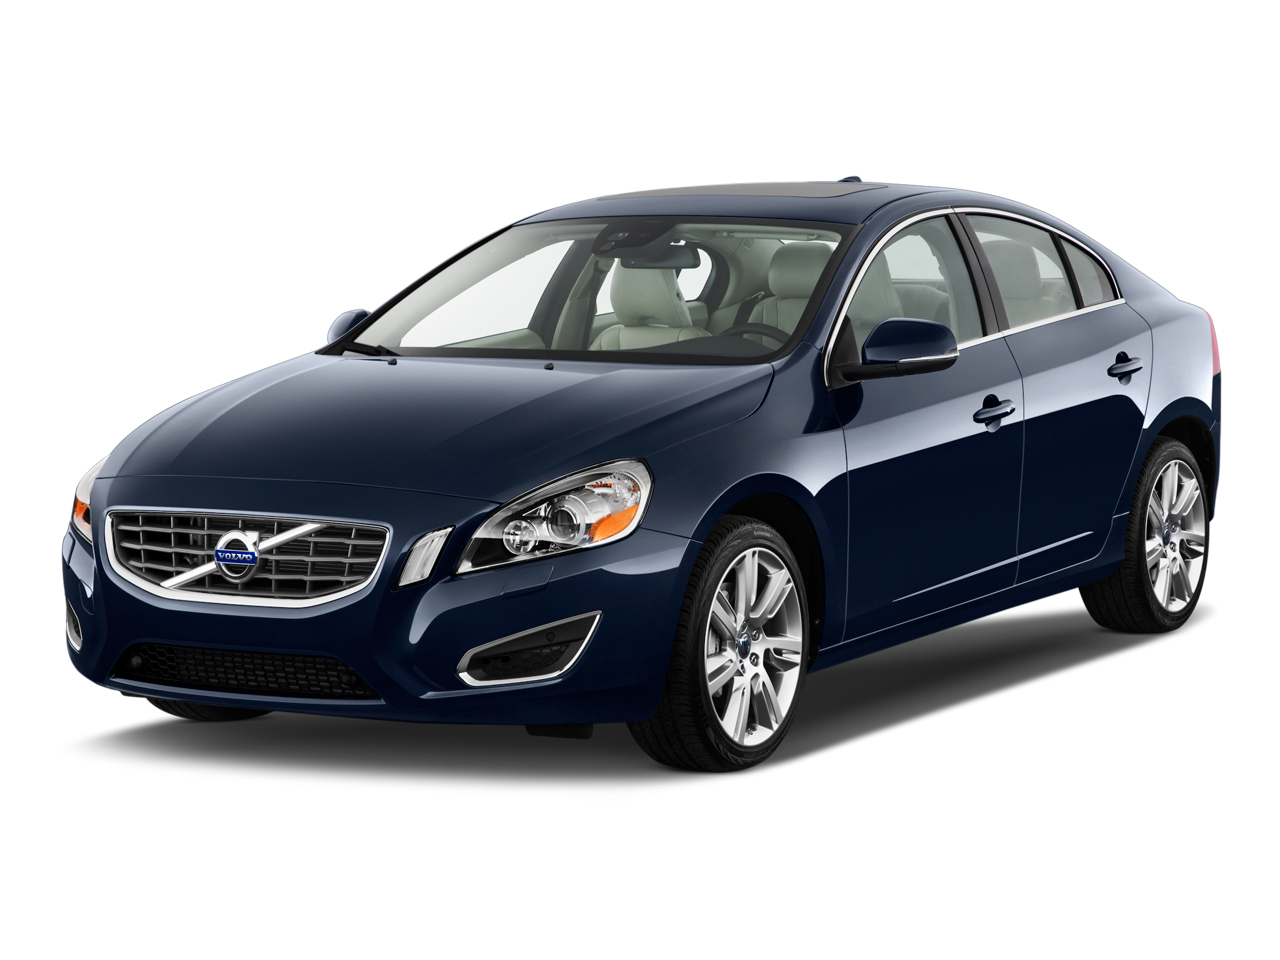 2012 Volvo S60 Review, Ratings, Specs, Prices, And Photos